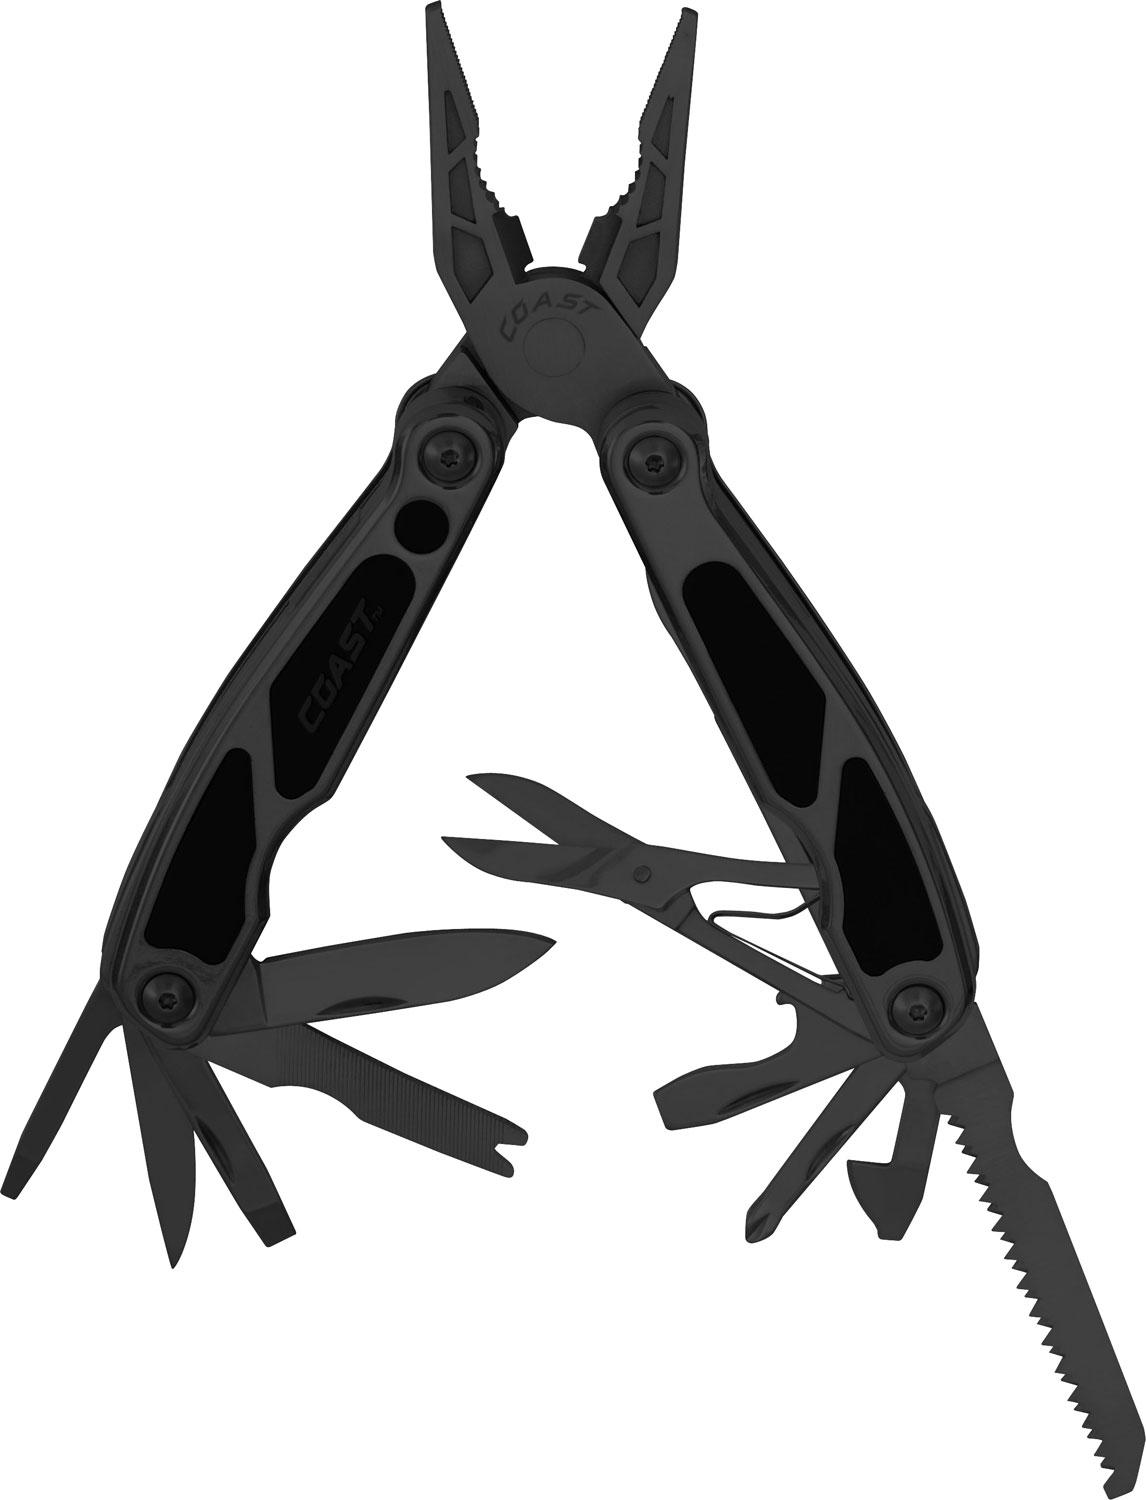 Coast Cutlery 5799B Tactical Black LED Pocket Pliers Multi-Tool 4 inch Closed Length, Steel and Rubber Handles